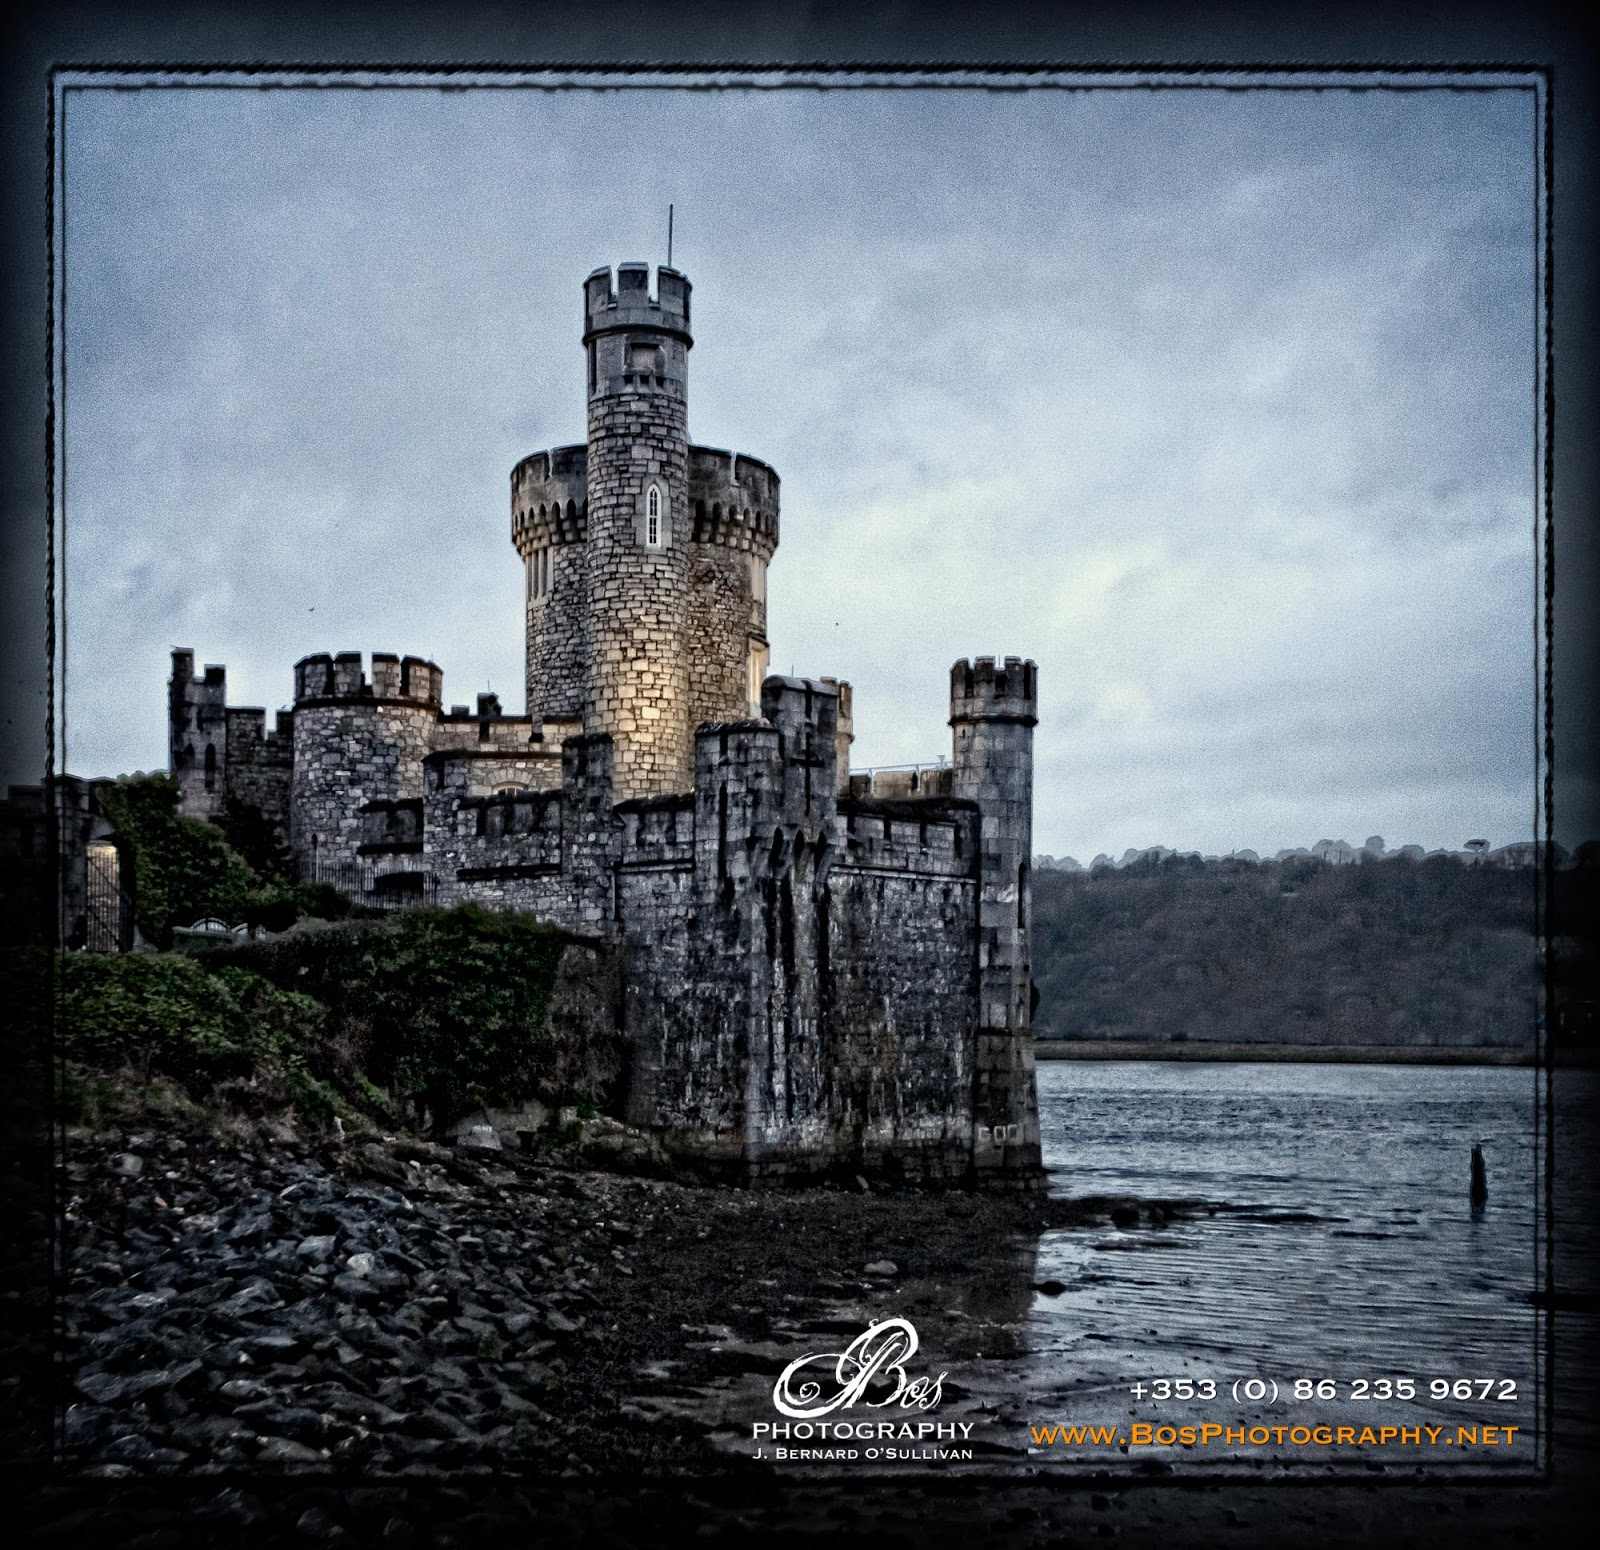 BosPhotography/Blog: Blackrock Castle, Co. Cork, Ireland